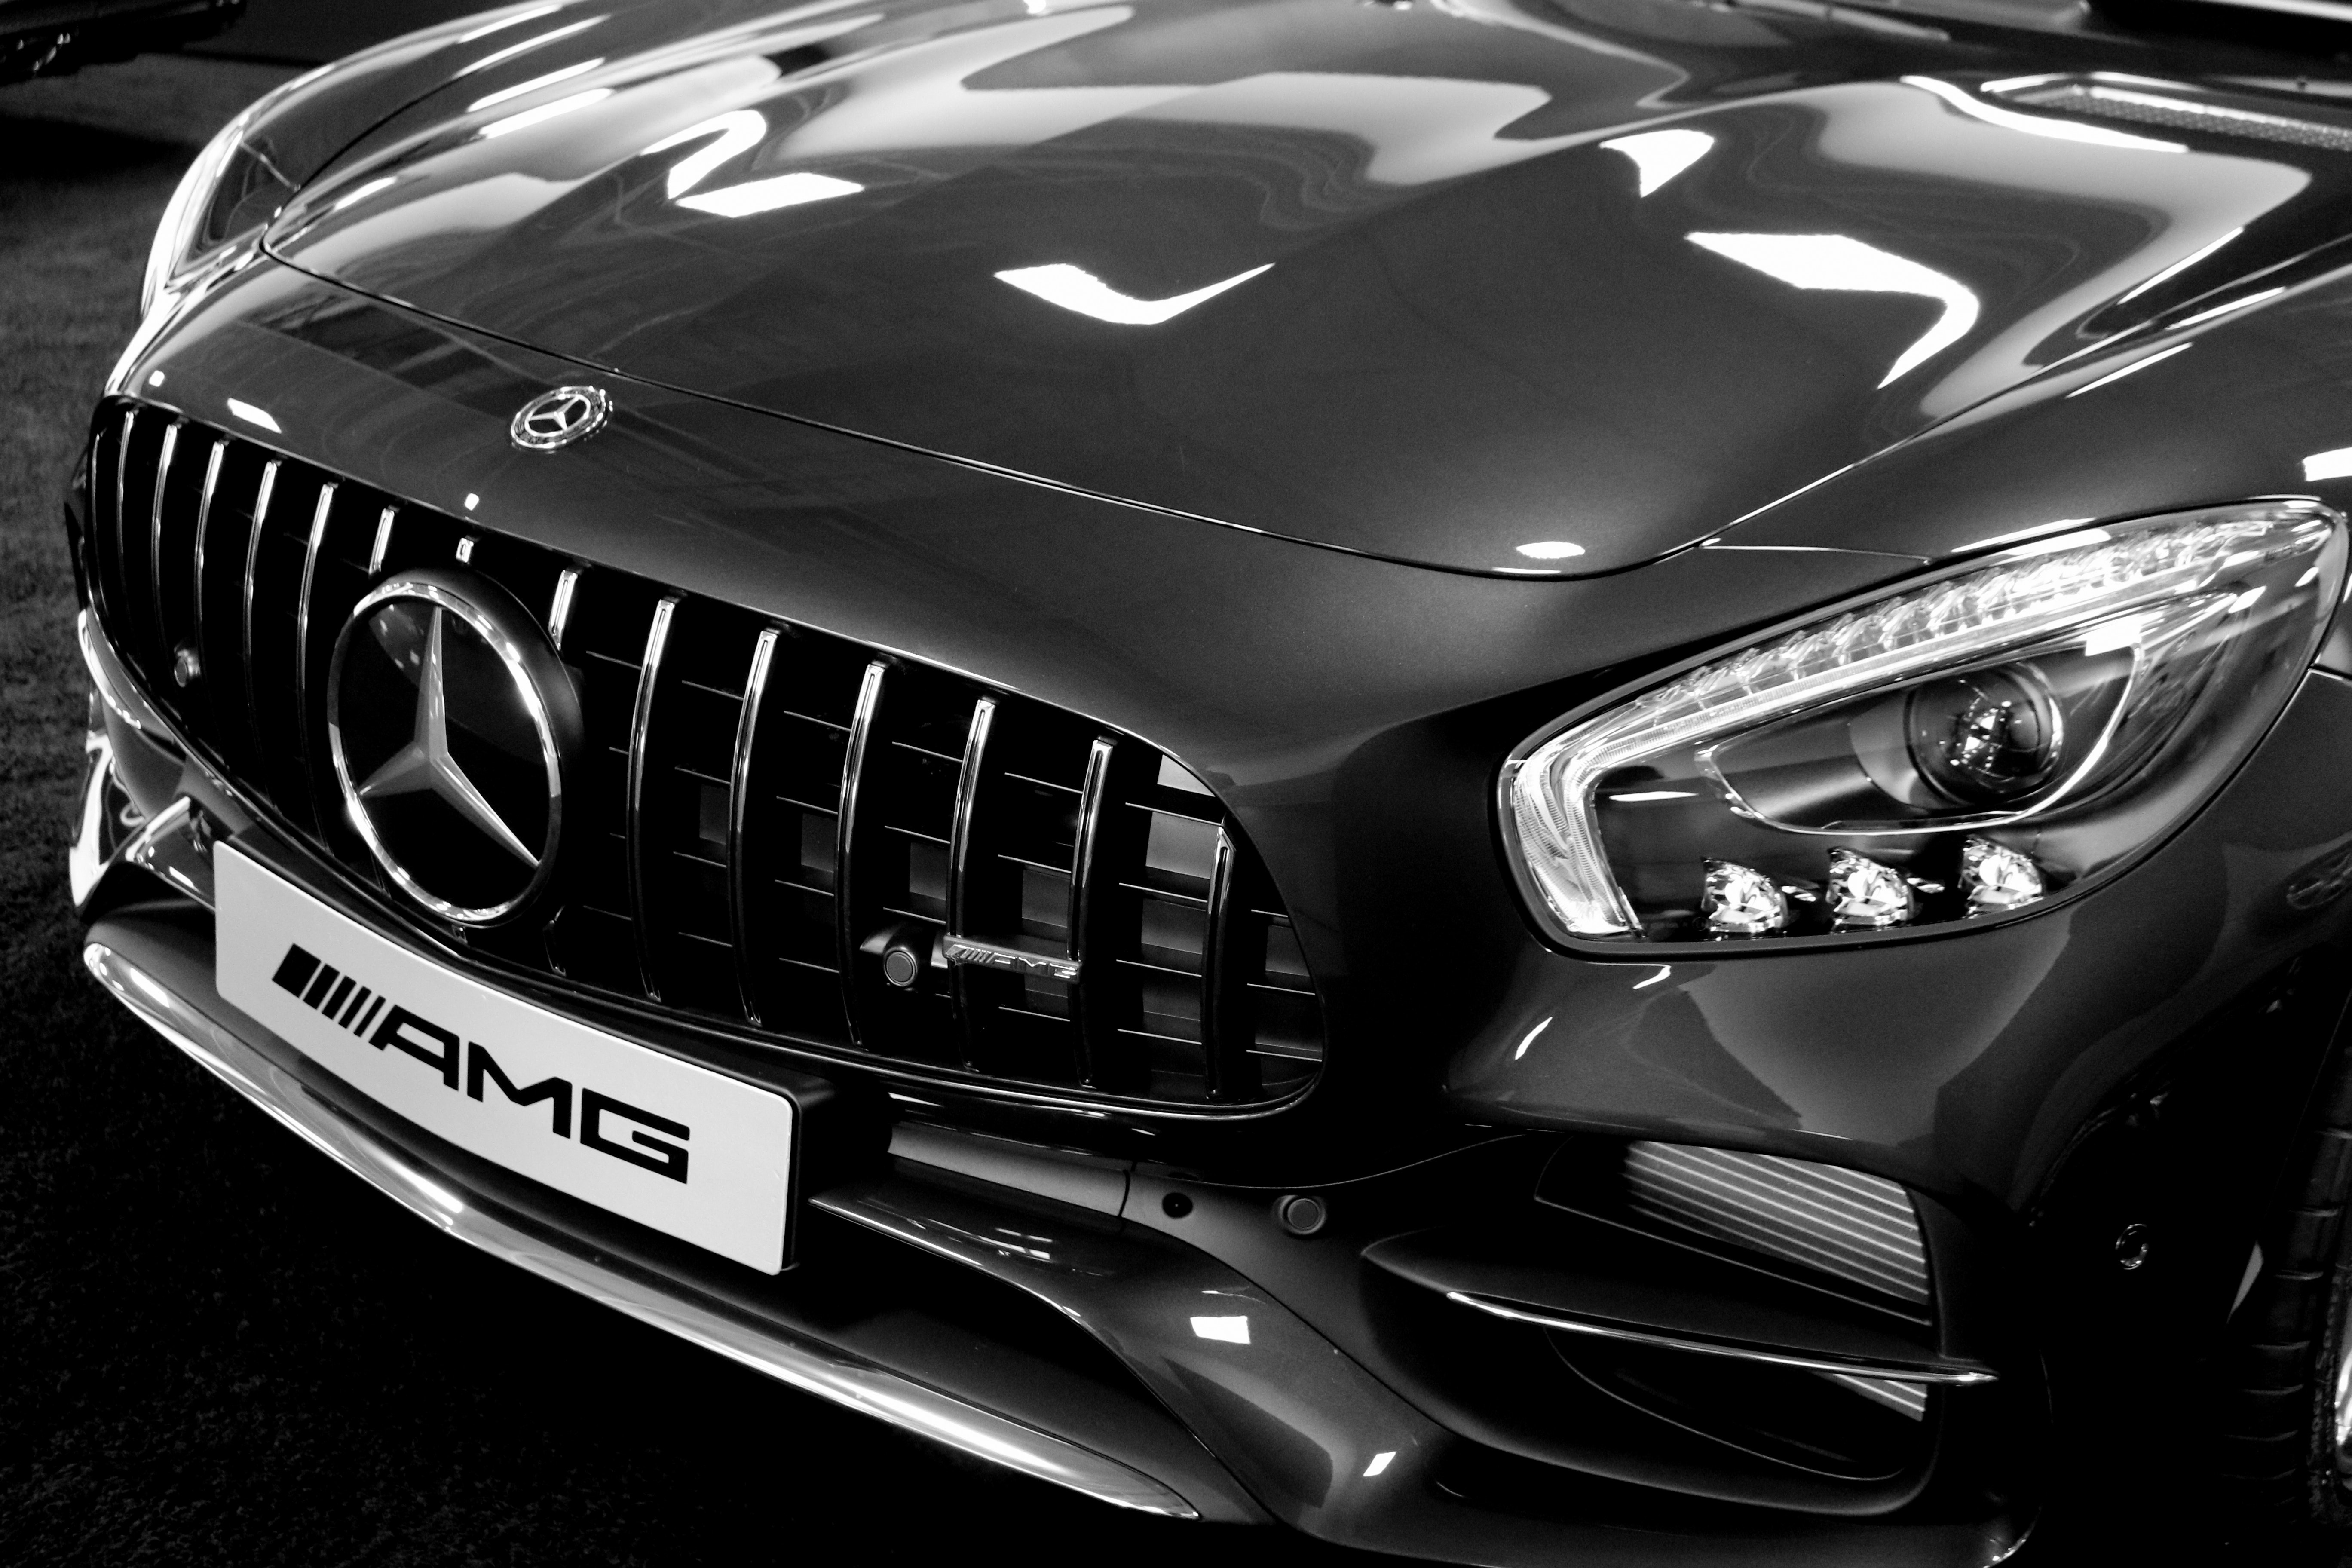 Car Grayscale Photography 183 Free Stock Photo